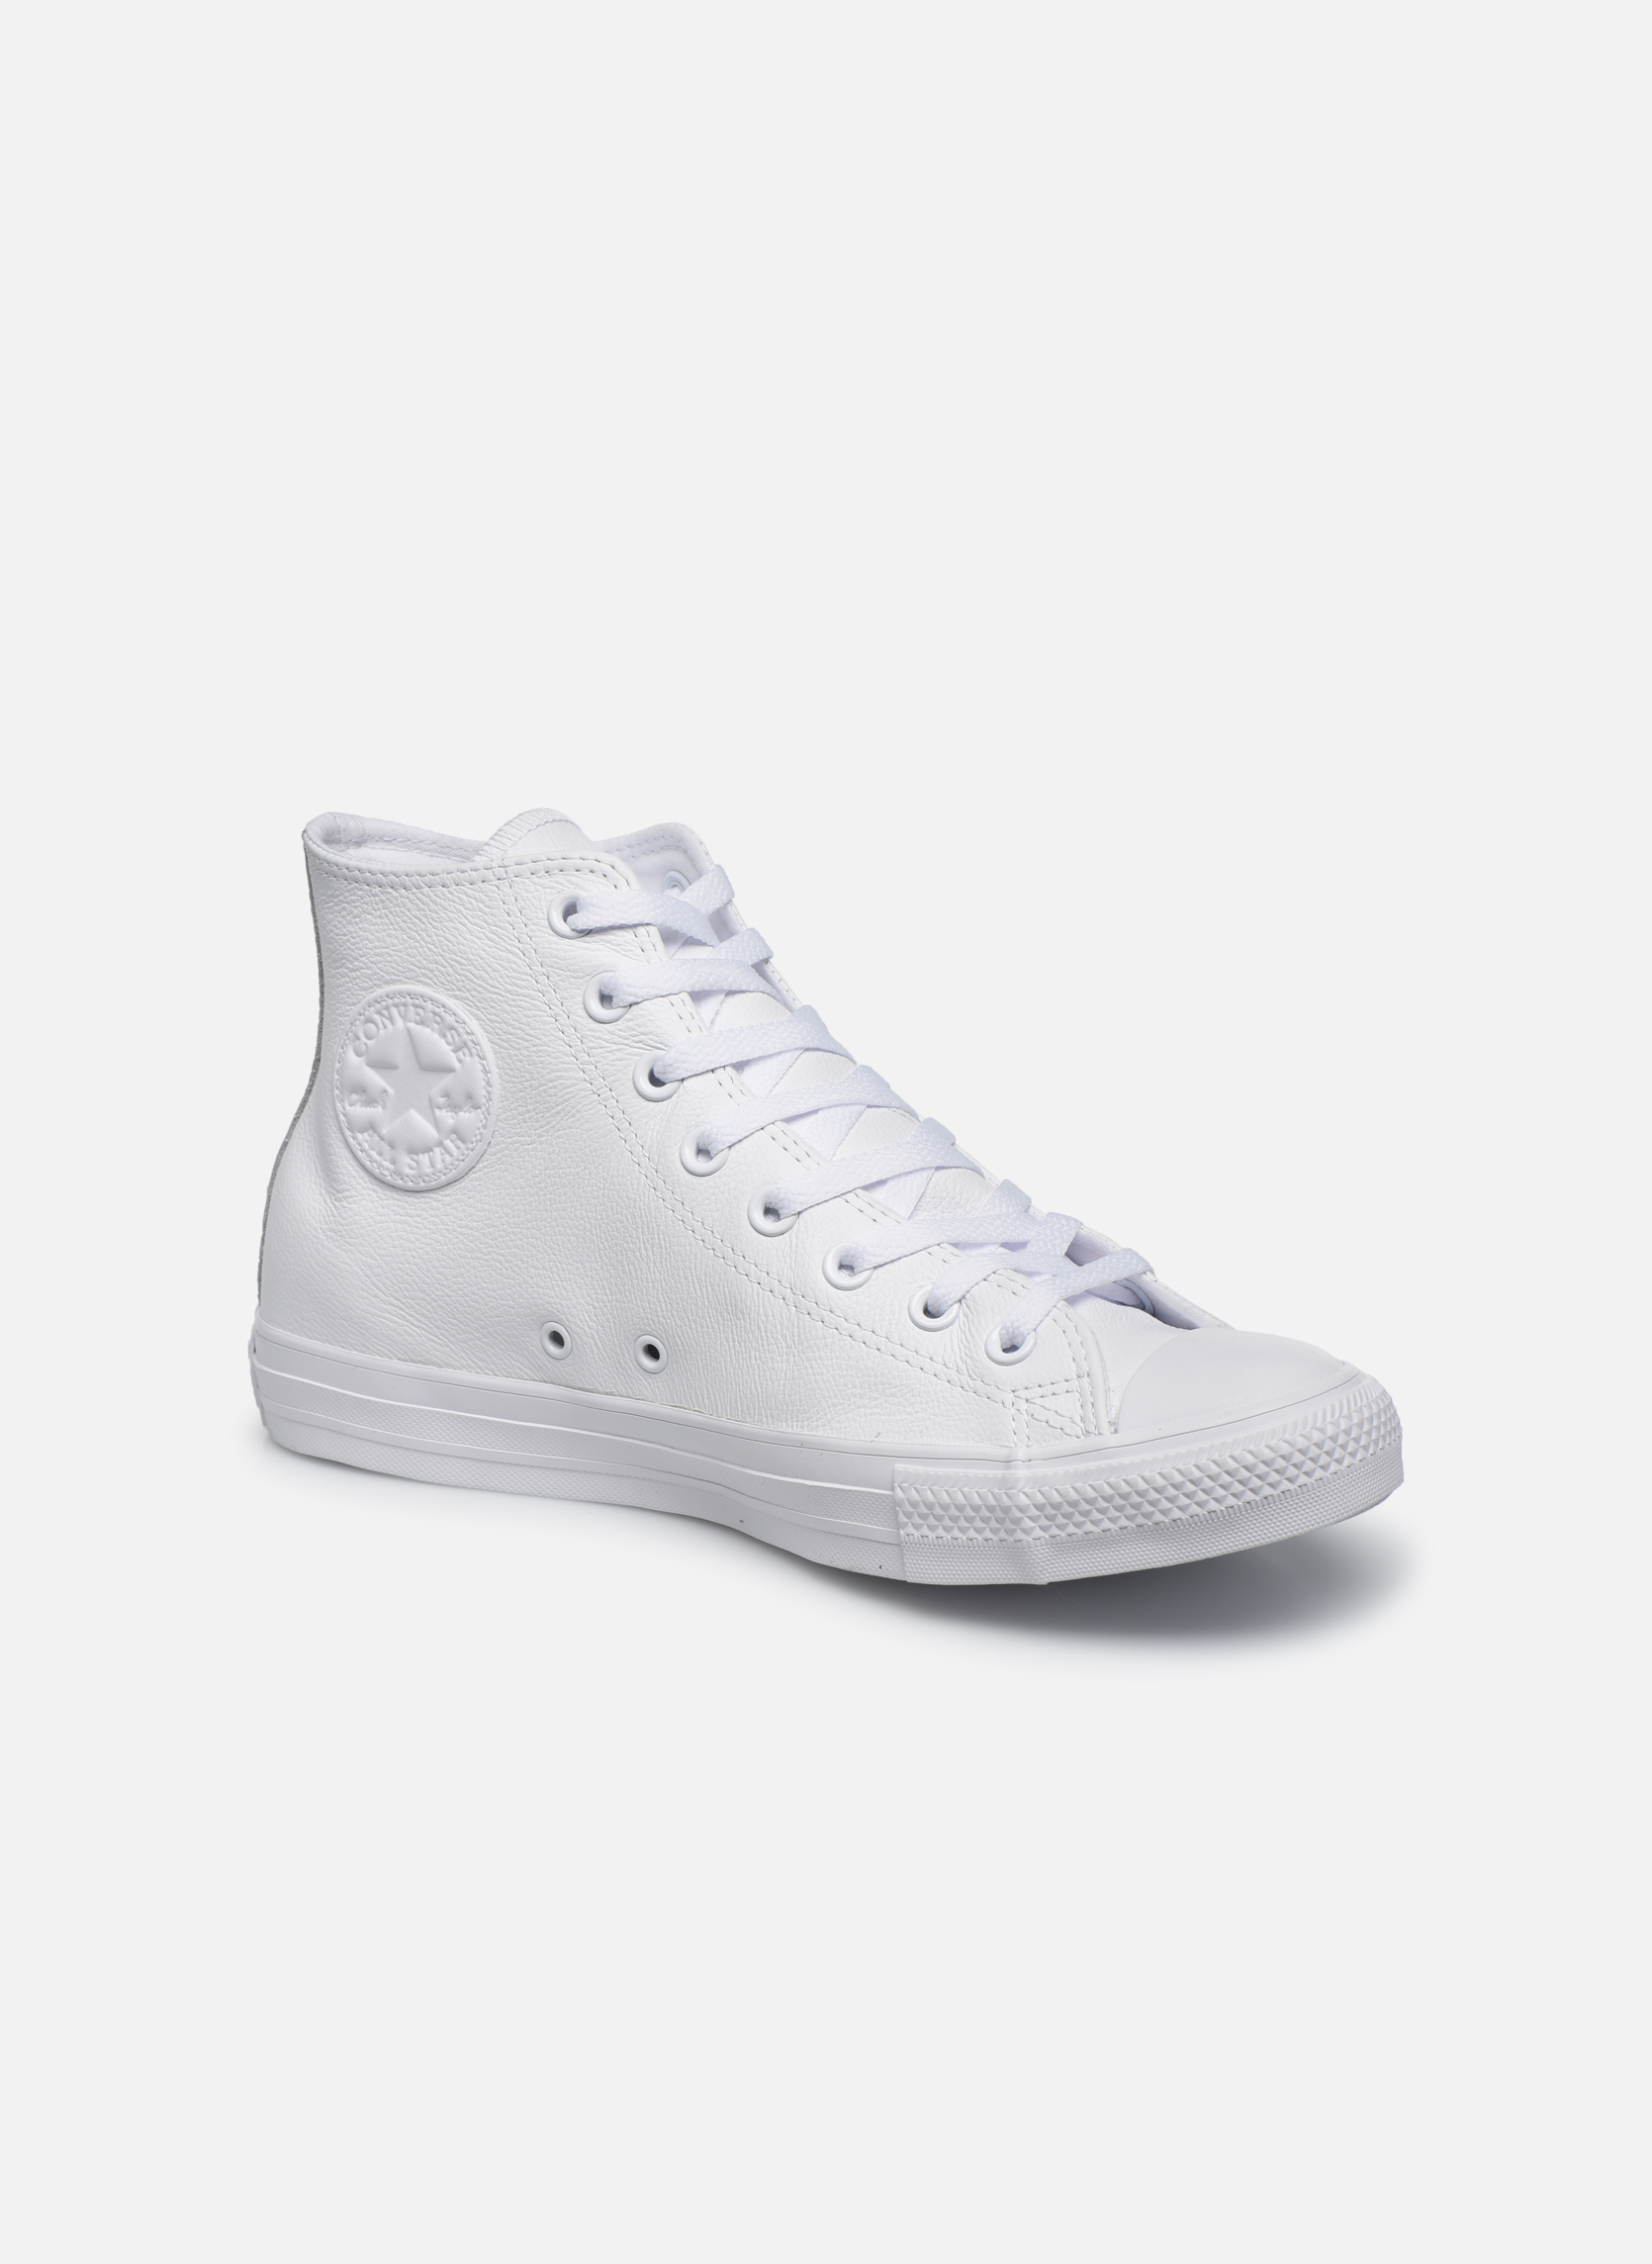 Baskets Femme Chuck Taylor All Star Mono Leather Hi W